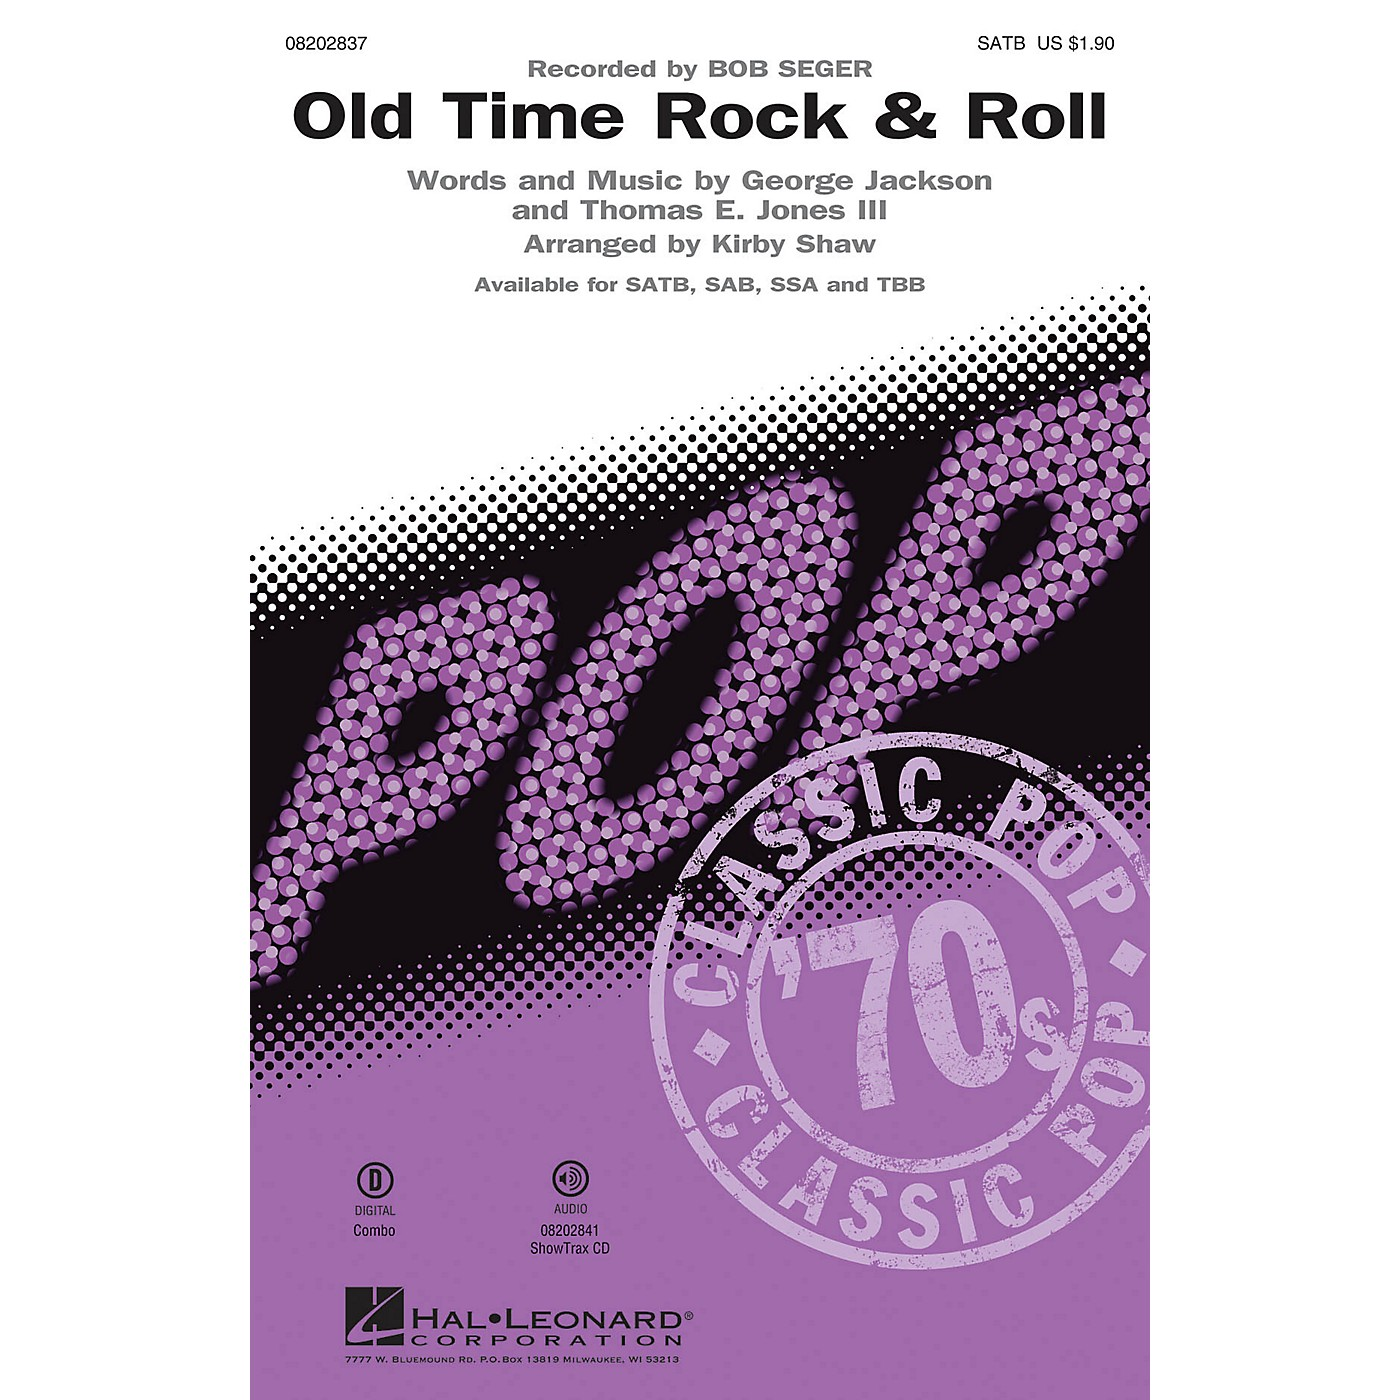 Hal Leonard Old Time Rock & Roll ShowTrax CD by Bob Seger Arranged by Kirby Shaw thumbnail